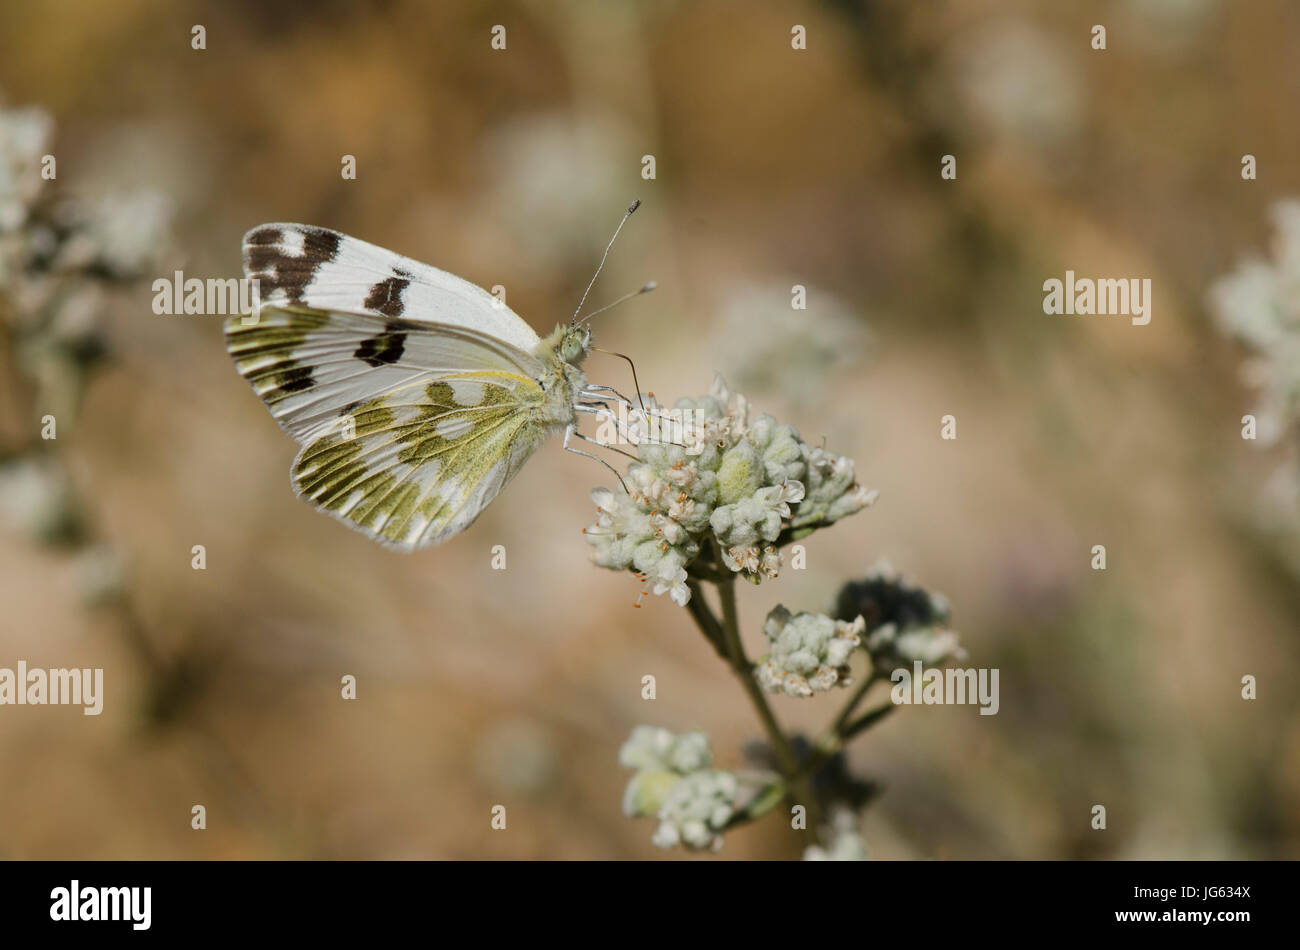 Bath White, Pontia daplidice butterfly on sage plant, Andalusia, Spain Stock Photo